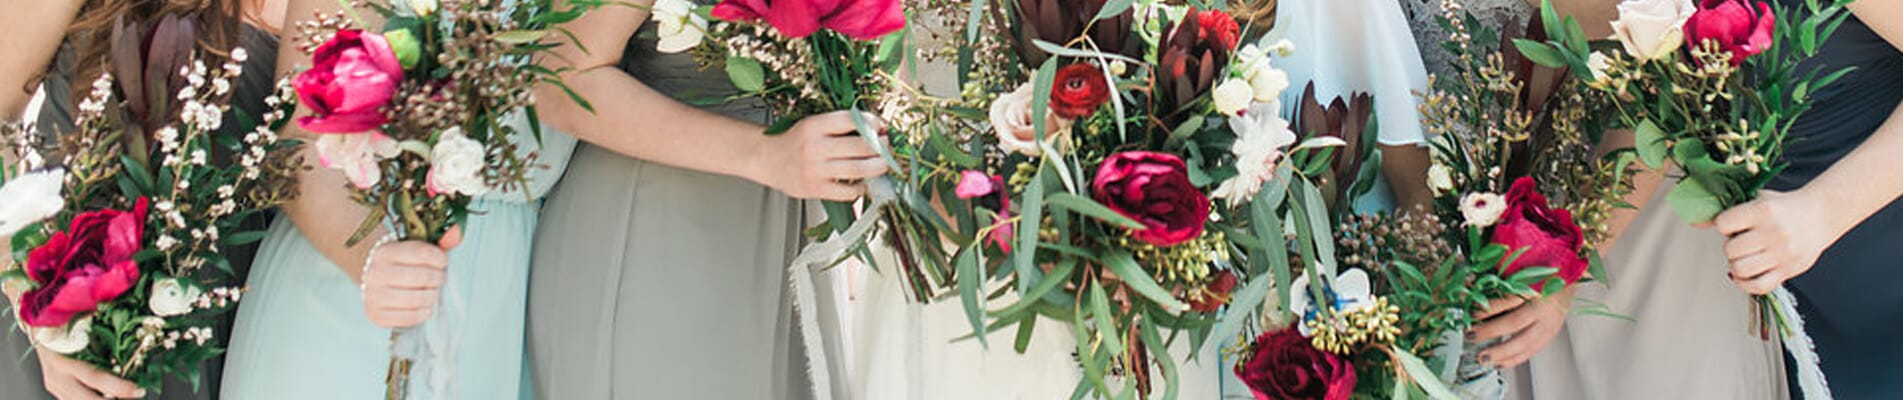 Buy wholesale bulk flowers online for your special event